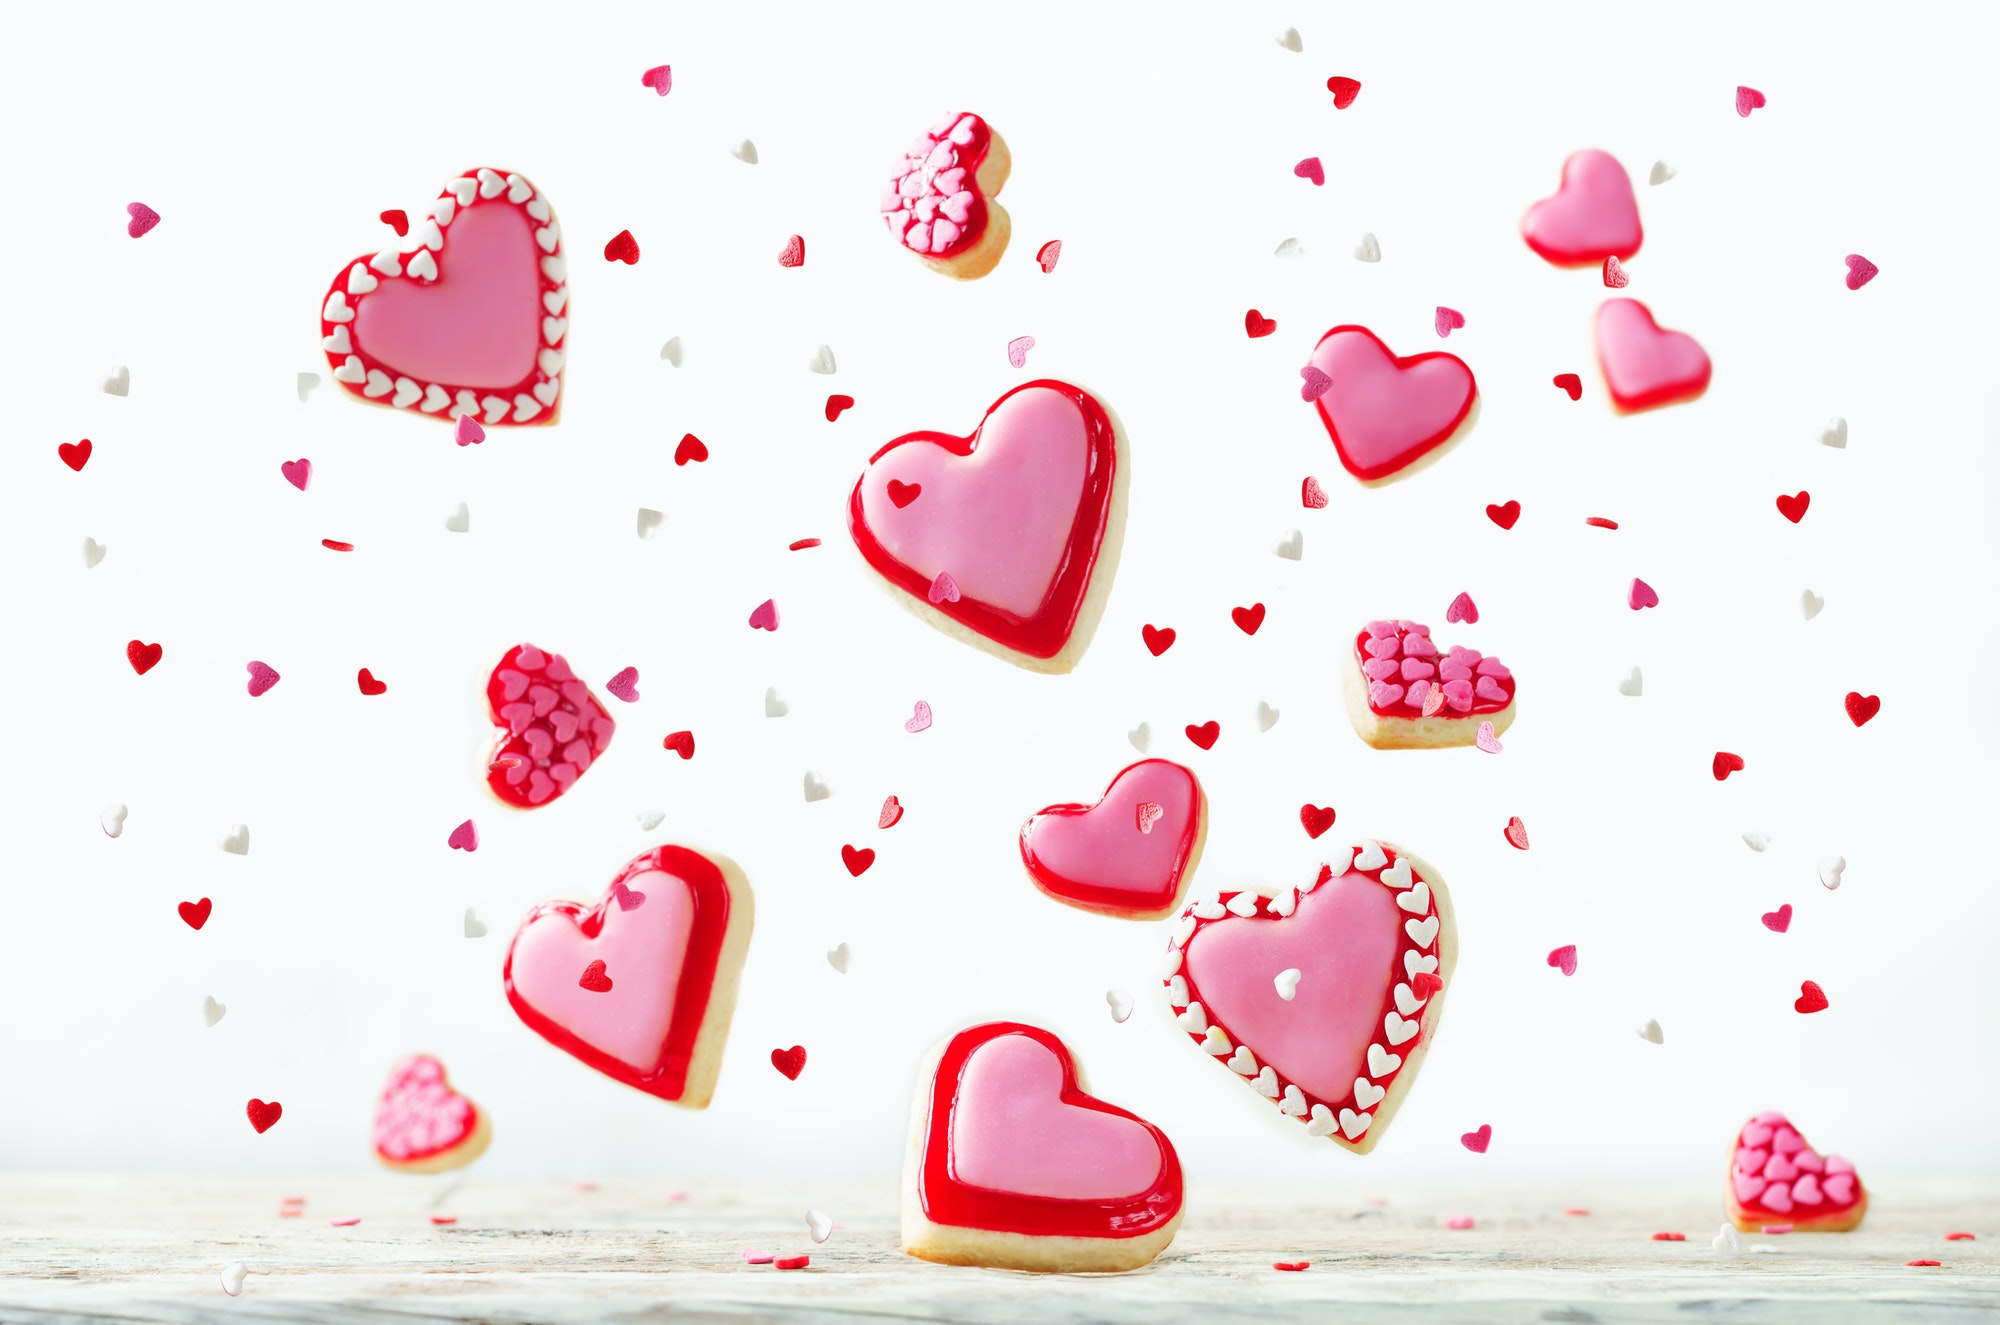 Heart shape flying sugar cookies with pink glaze for Valentine's